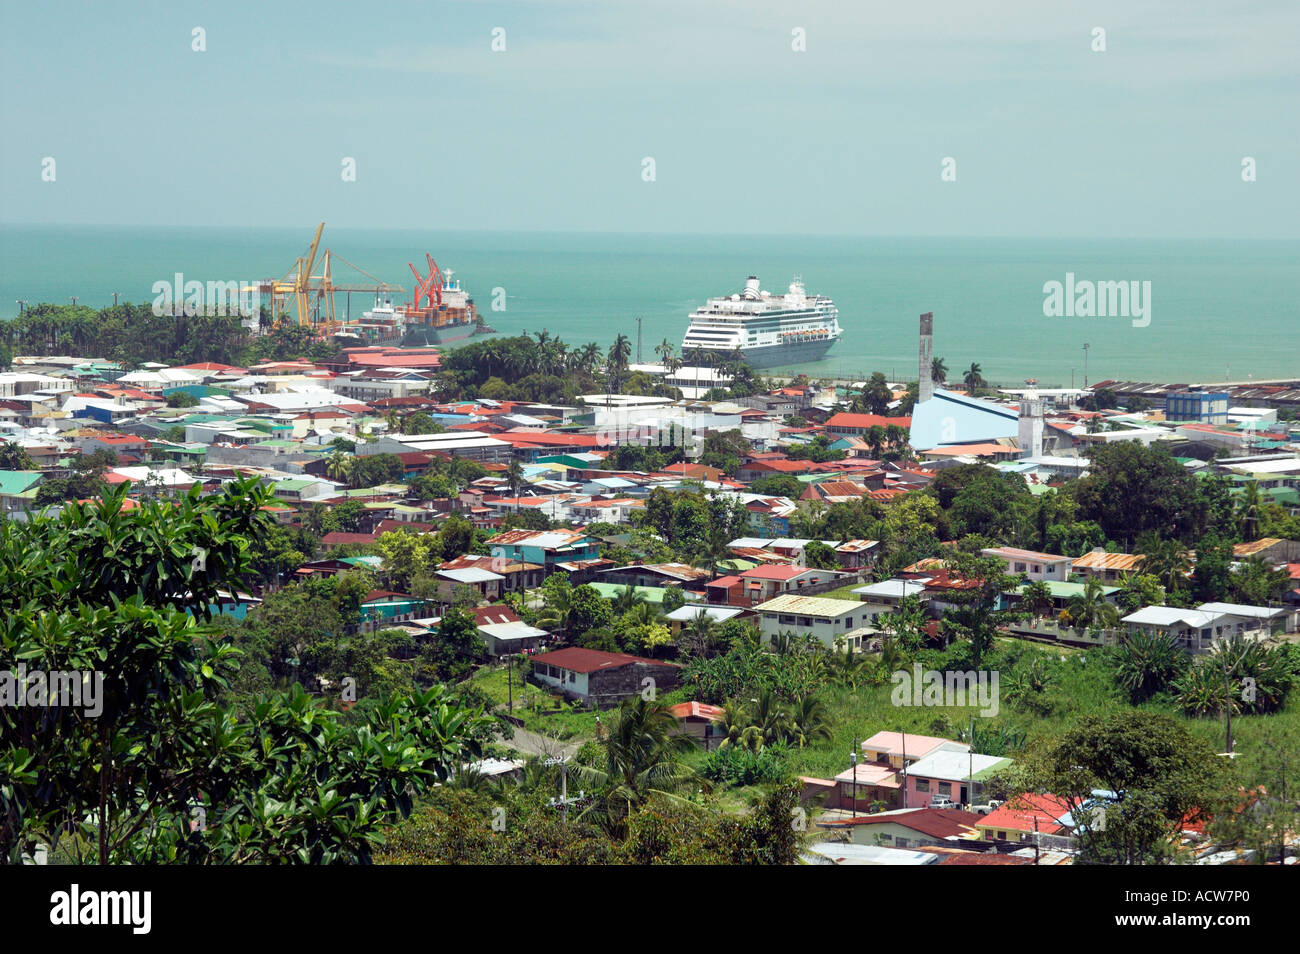 The port city of puerto limon costa rica and its cruise and container stock photo 7561887 alamy - Puerto limon costa rica ...